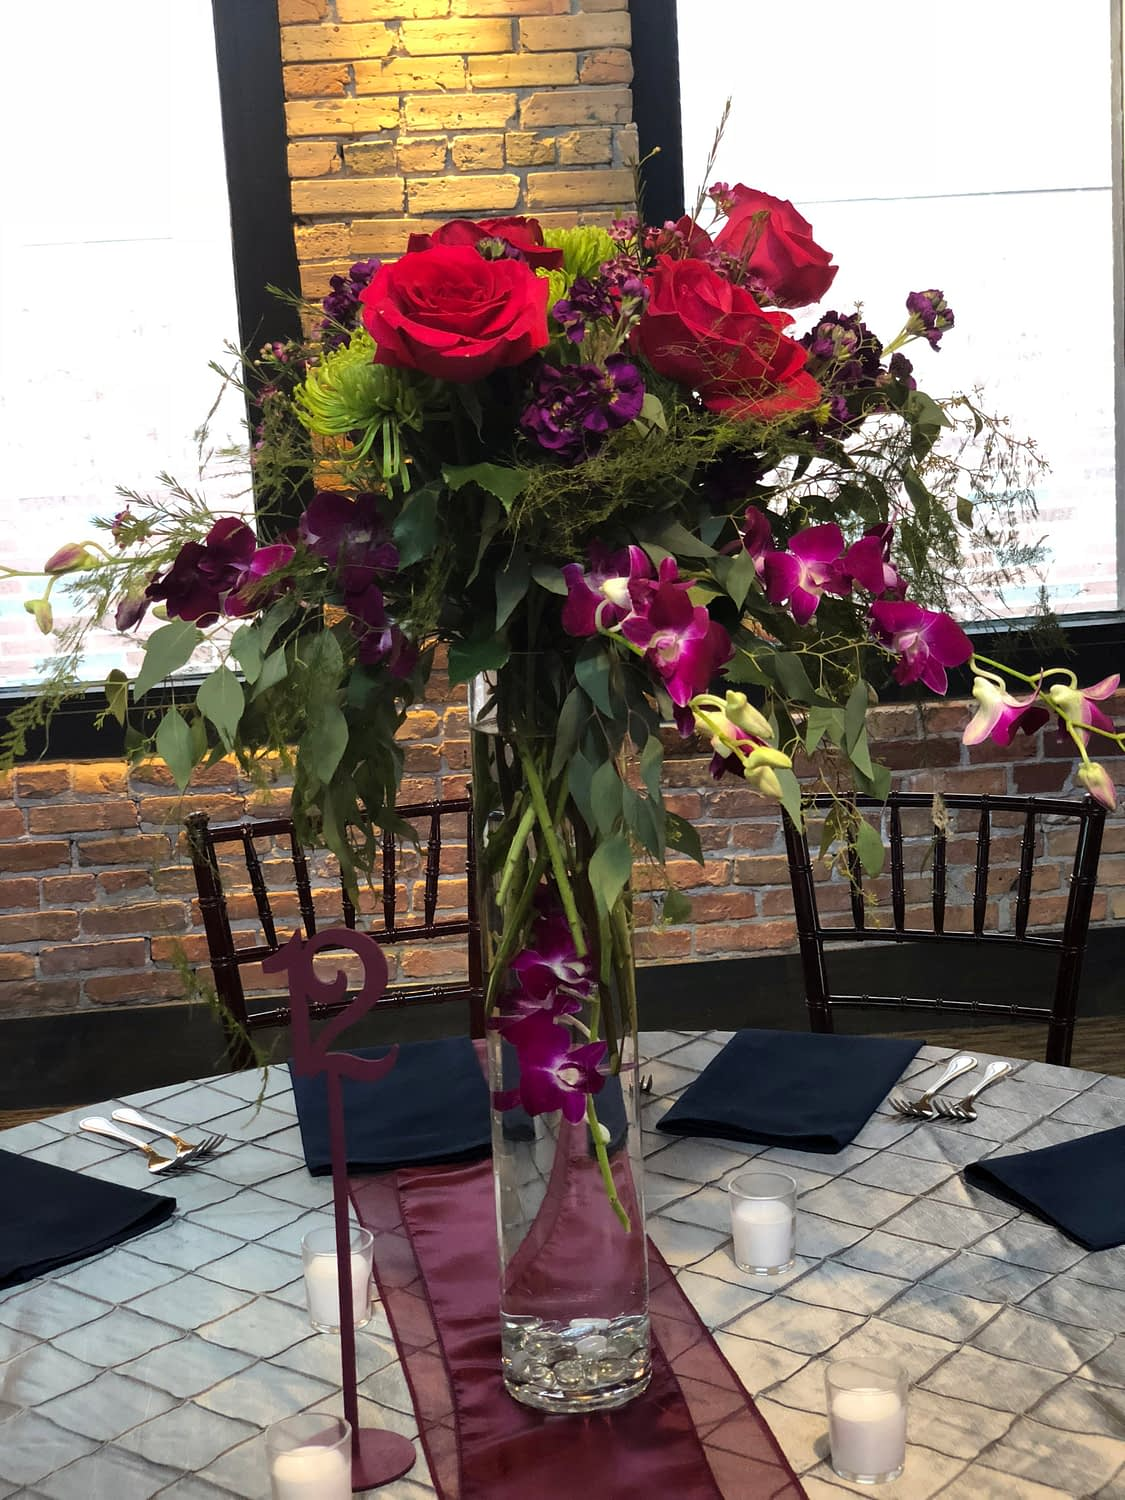 minneapolis event center reception tall floral centerpiece